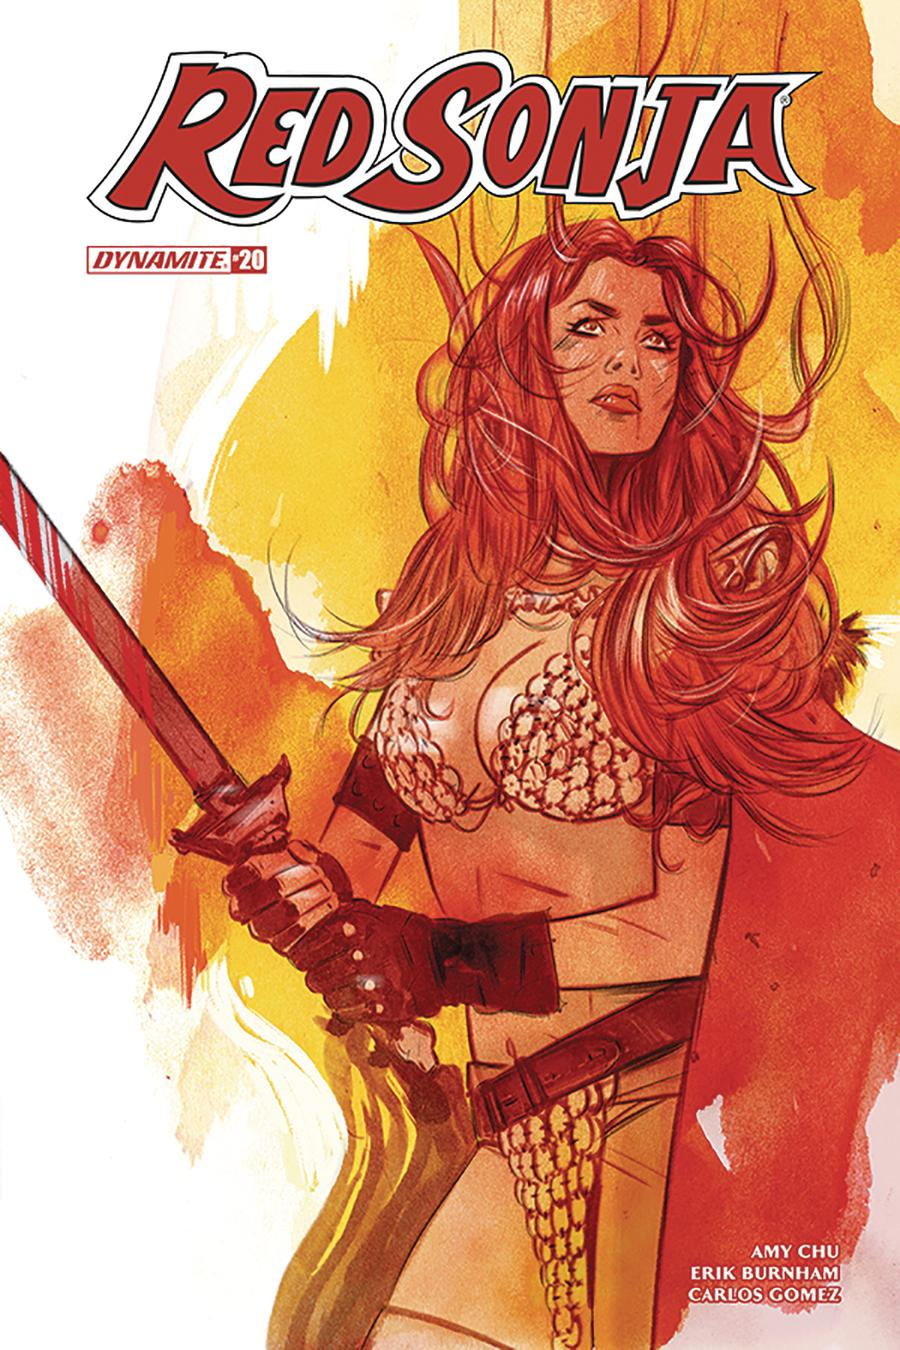 Red Sonja Vol 7 #20 Cover B Variant Tula Lotay Cover